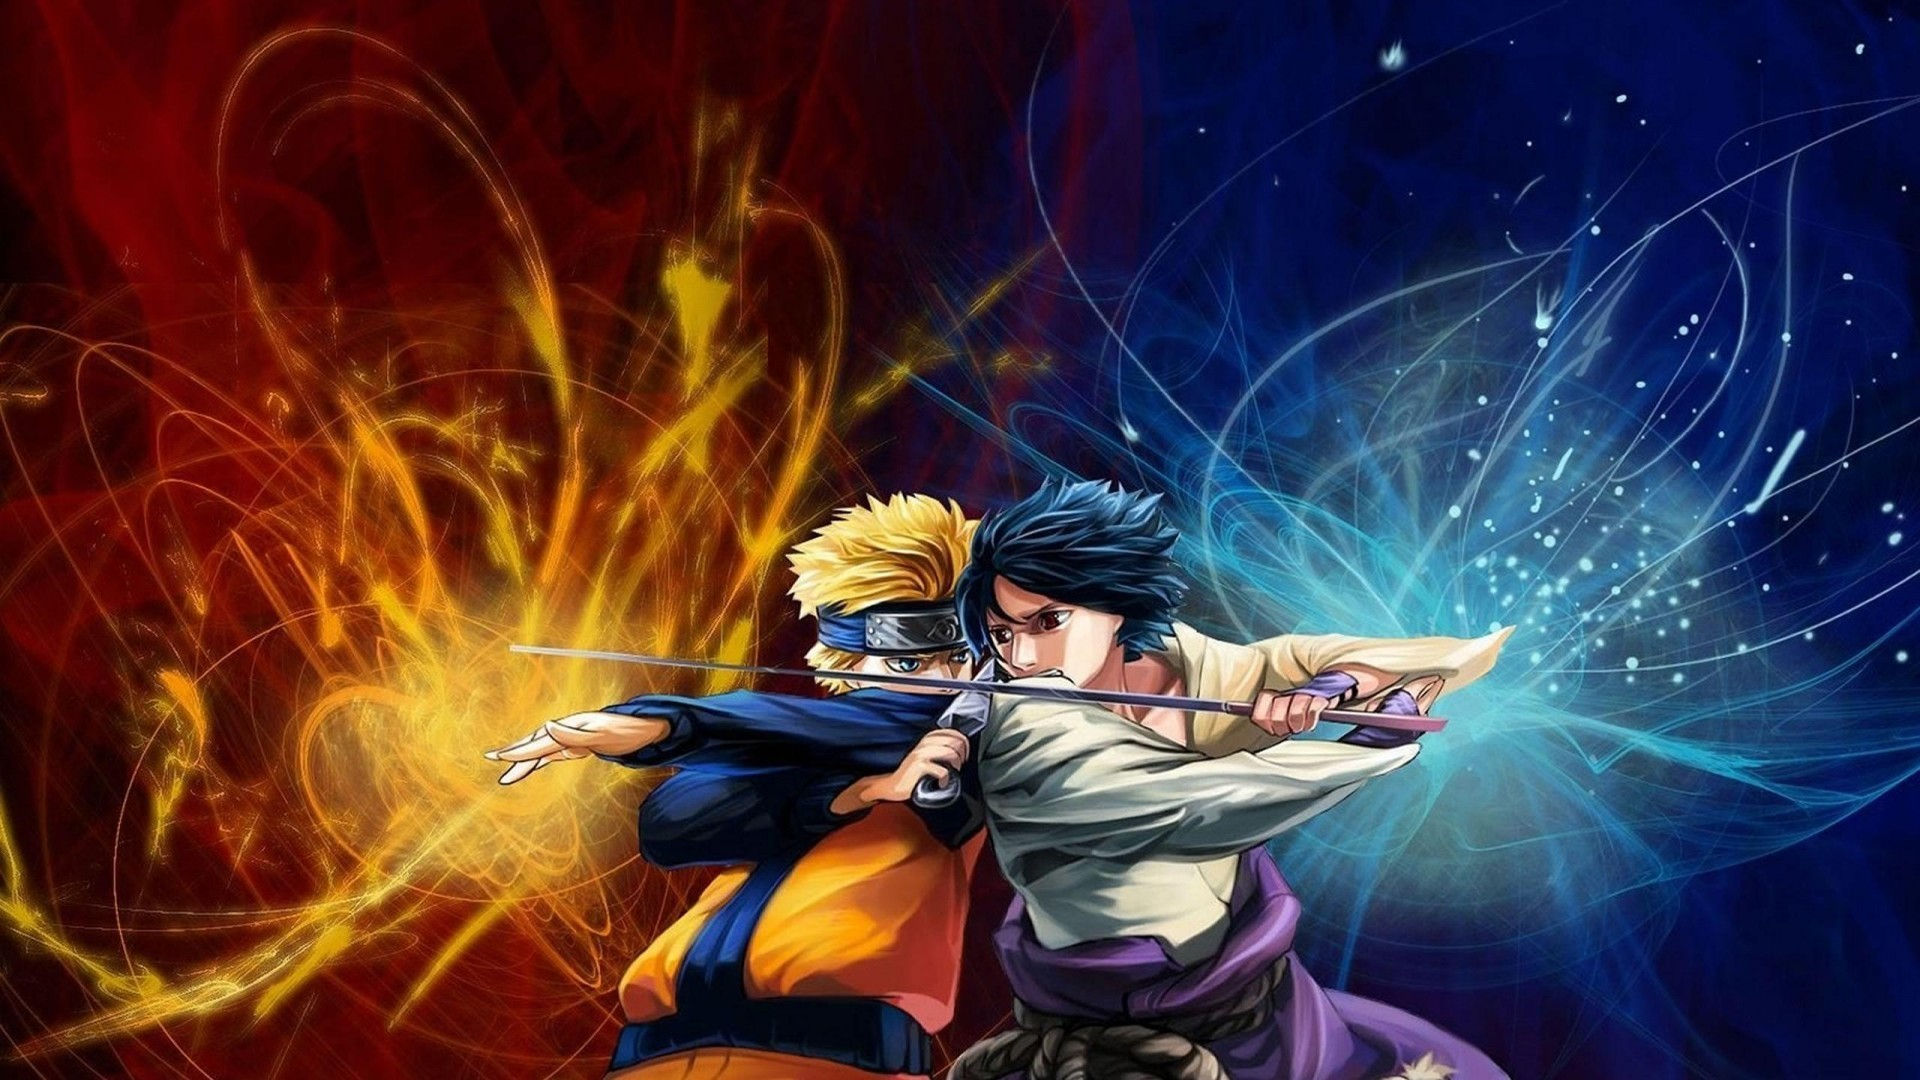 Background Wallpaper Naruto With high-resolution 1920X1080 pixel. You can use and set as wallpaper for Laptop, computer backgrounds, iPhone lock screen wallpaper and Android